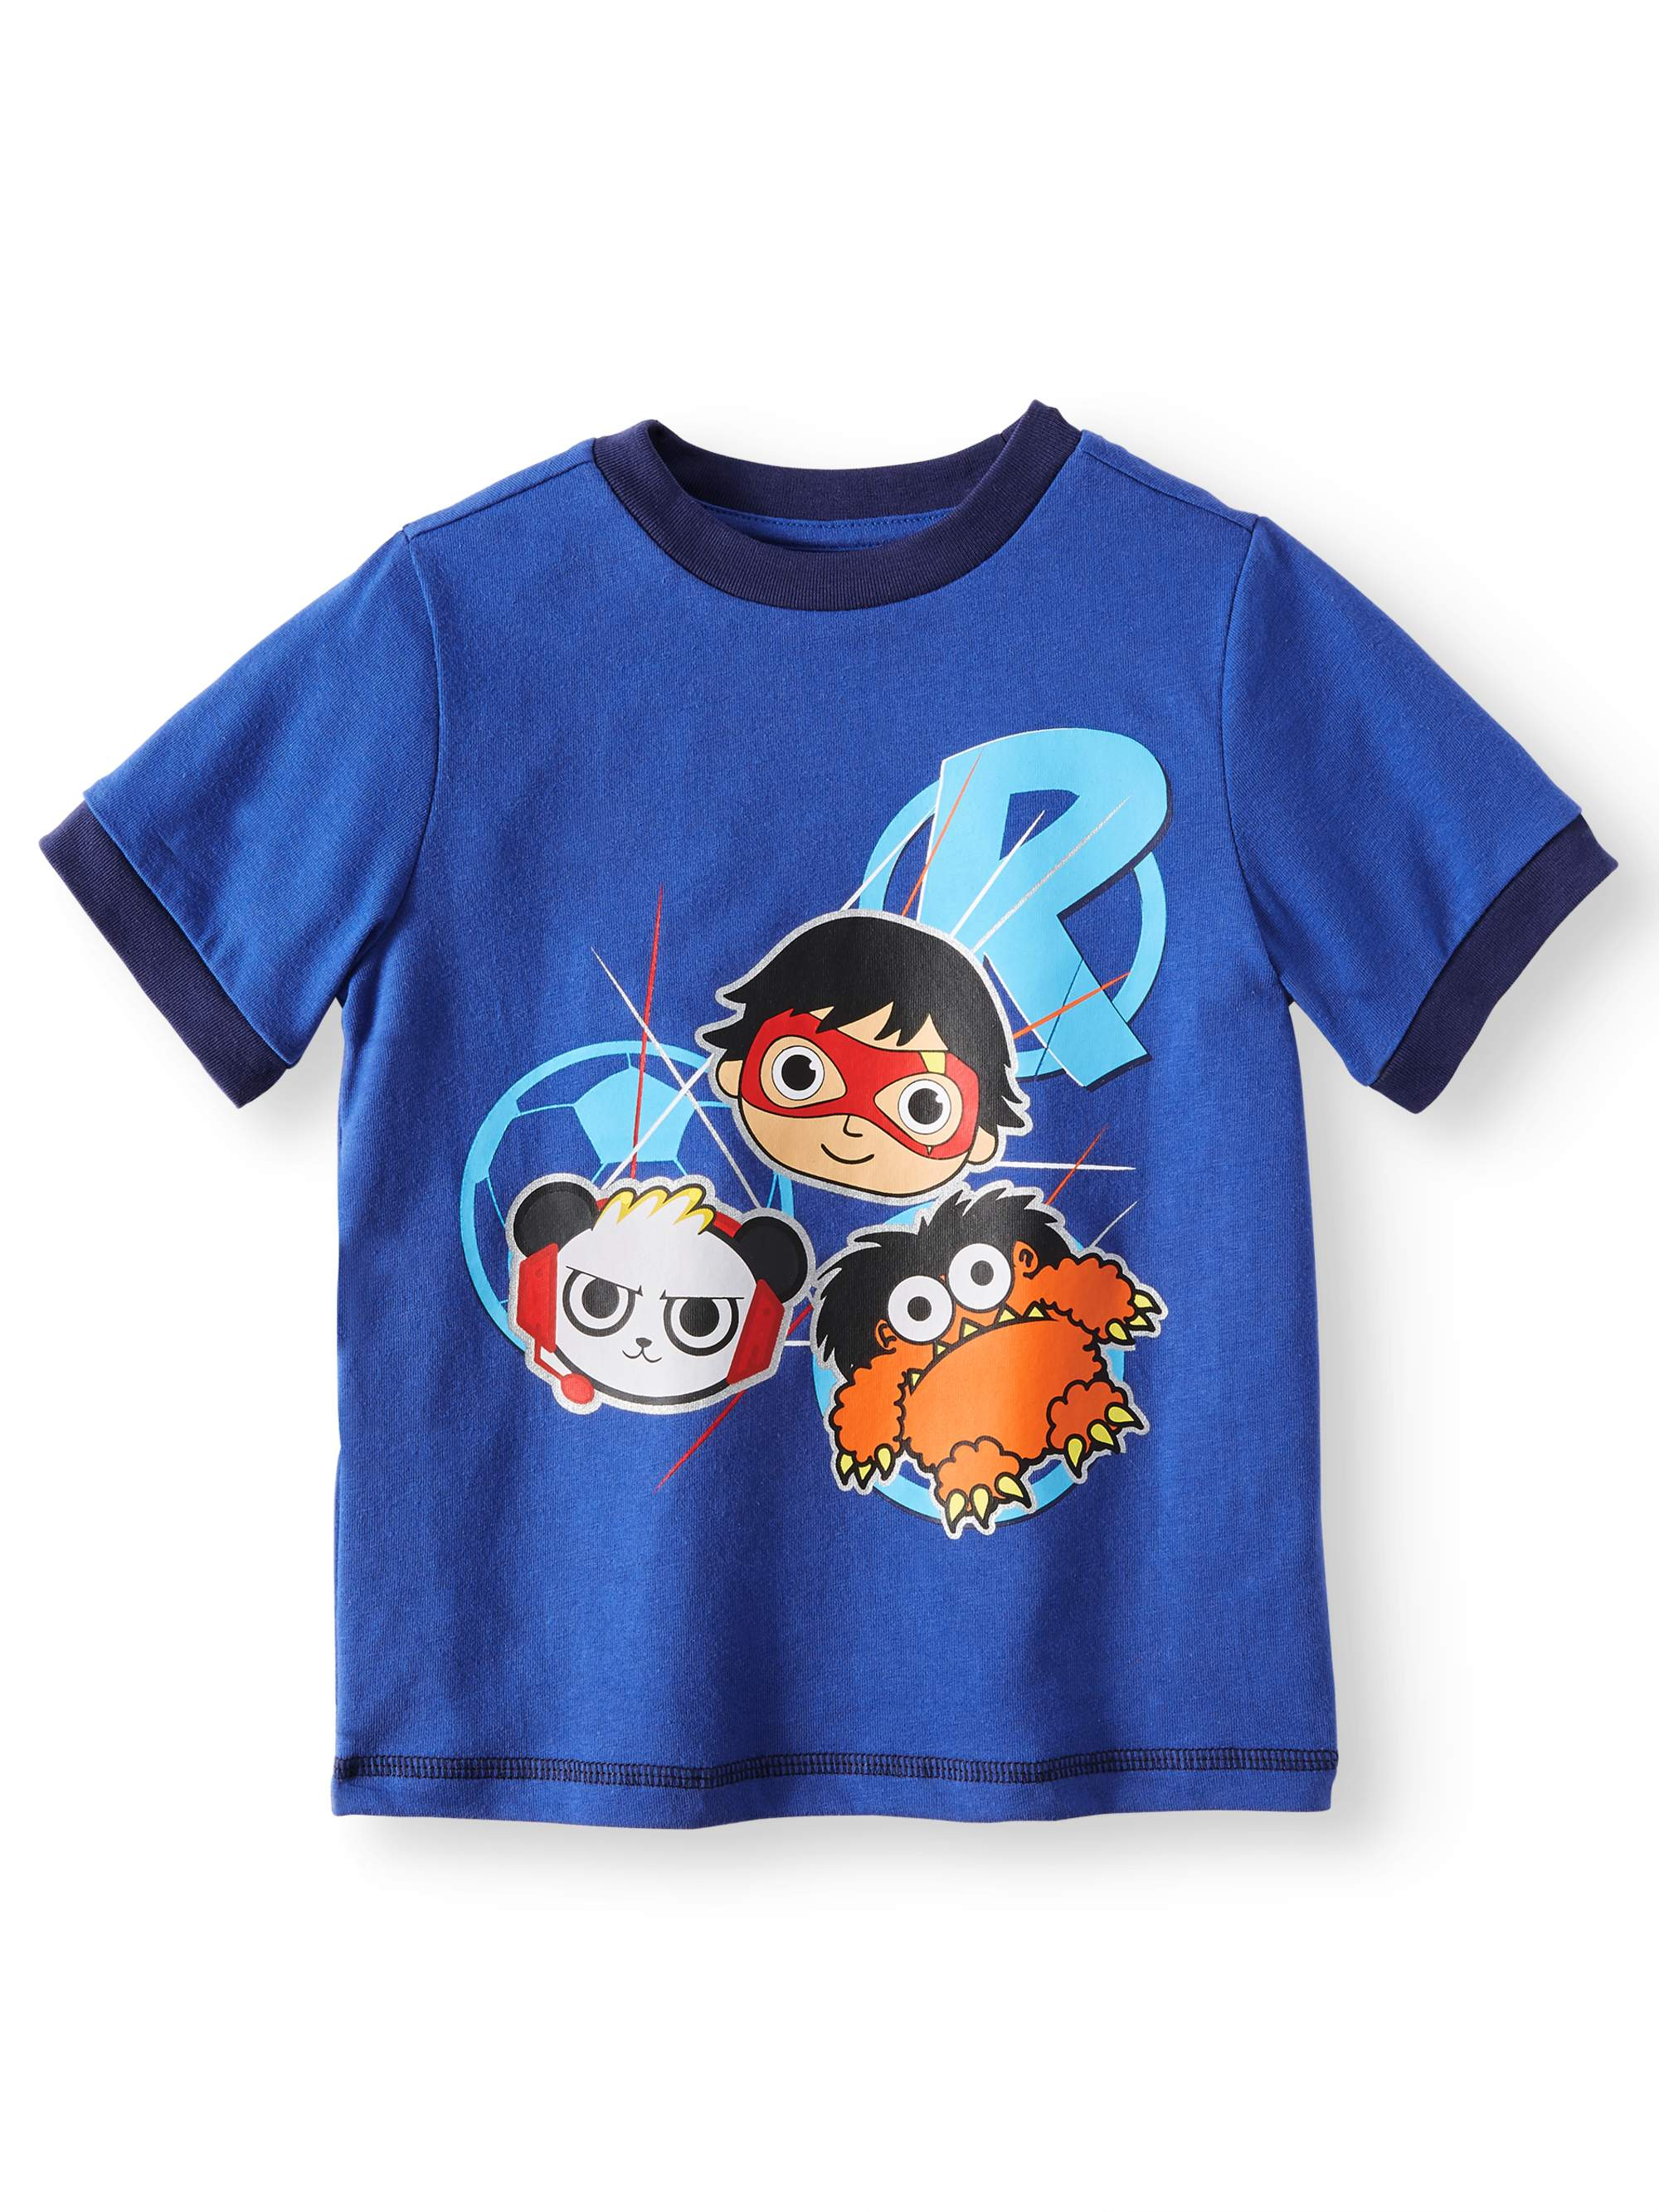 19d03cb59 Ryan's World - Short Sleeve Graphic Tee Shirt (Little Boys & Big ...